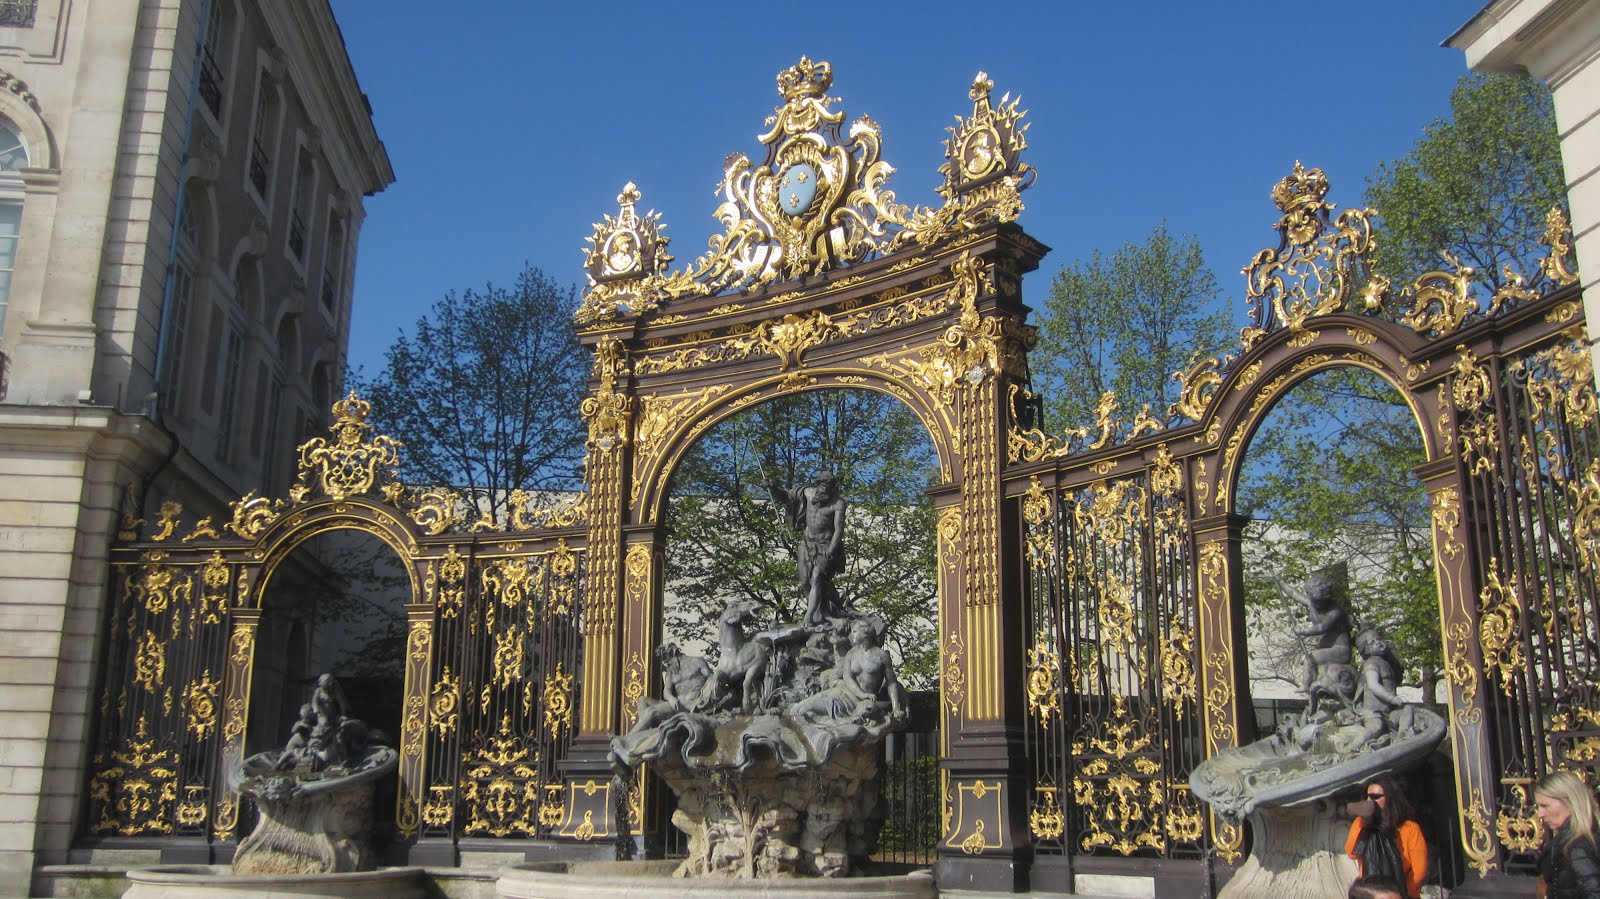 Place Stanislas - Fontaine de Neptune, Nancy France